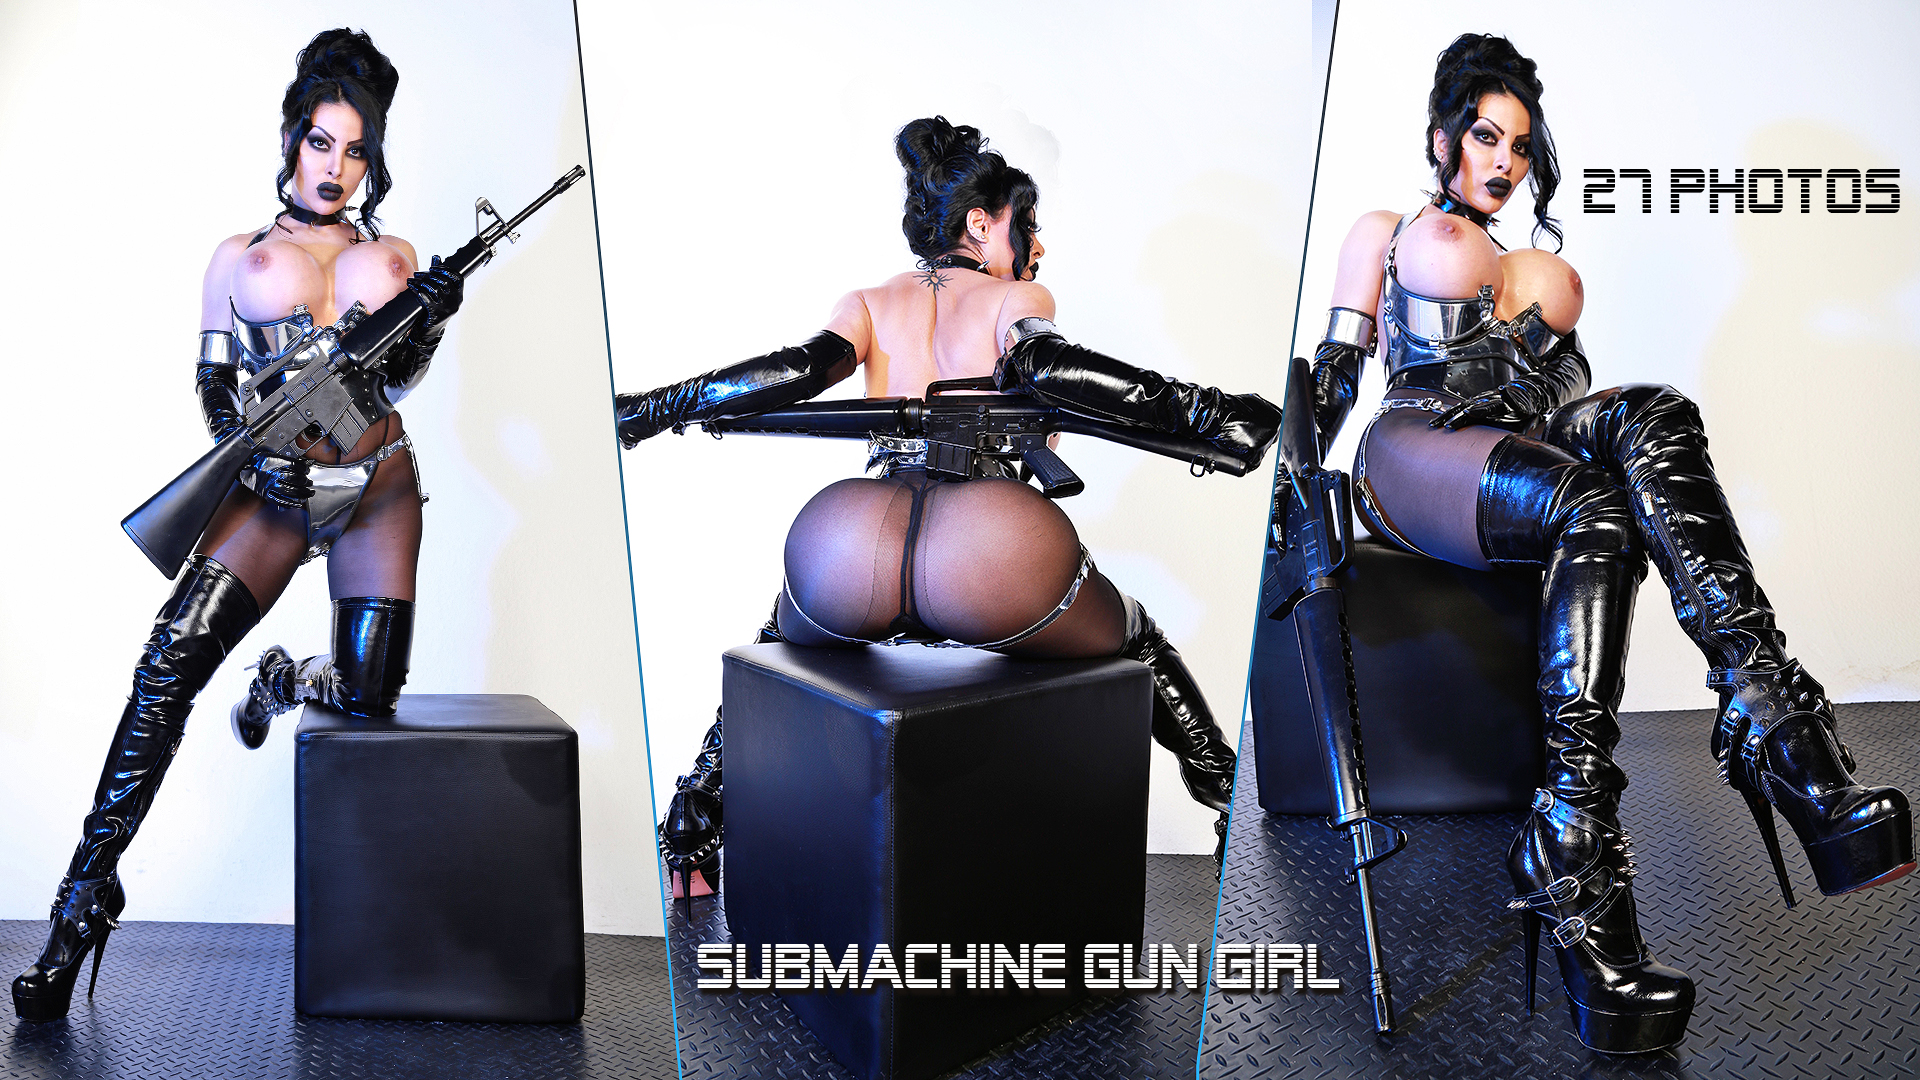 Submachine Gun Girl